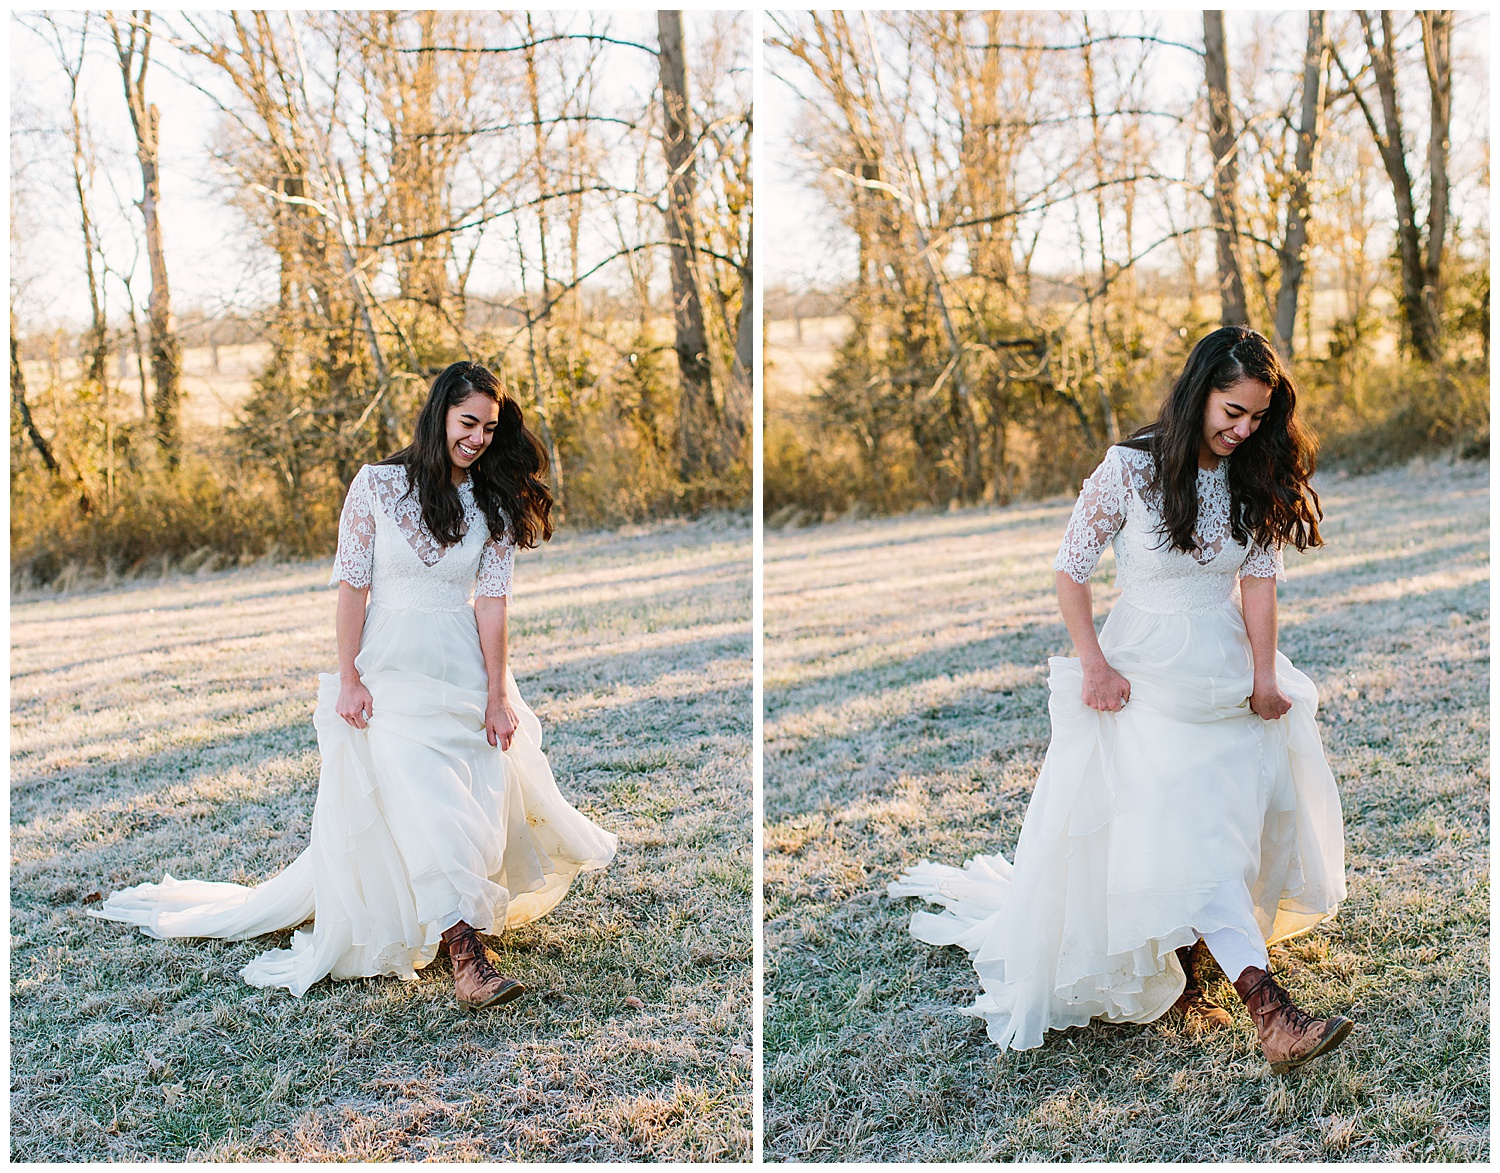 trent.and.kendra.photography.foxhollow.farm.elopement-84.jpg